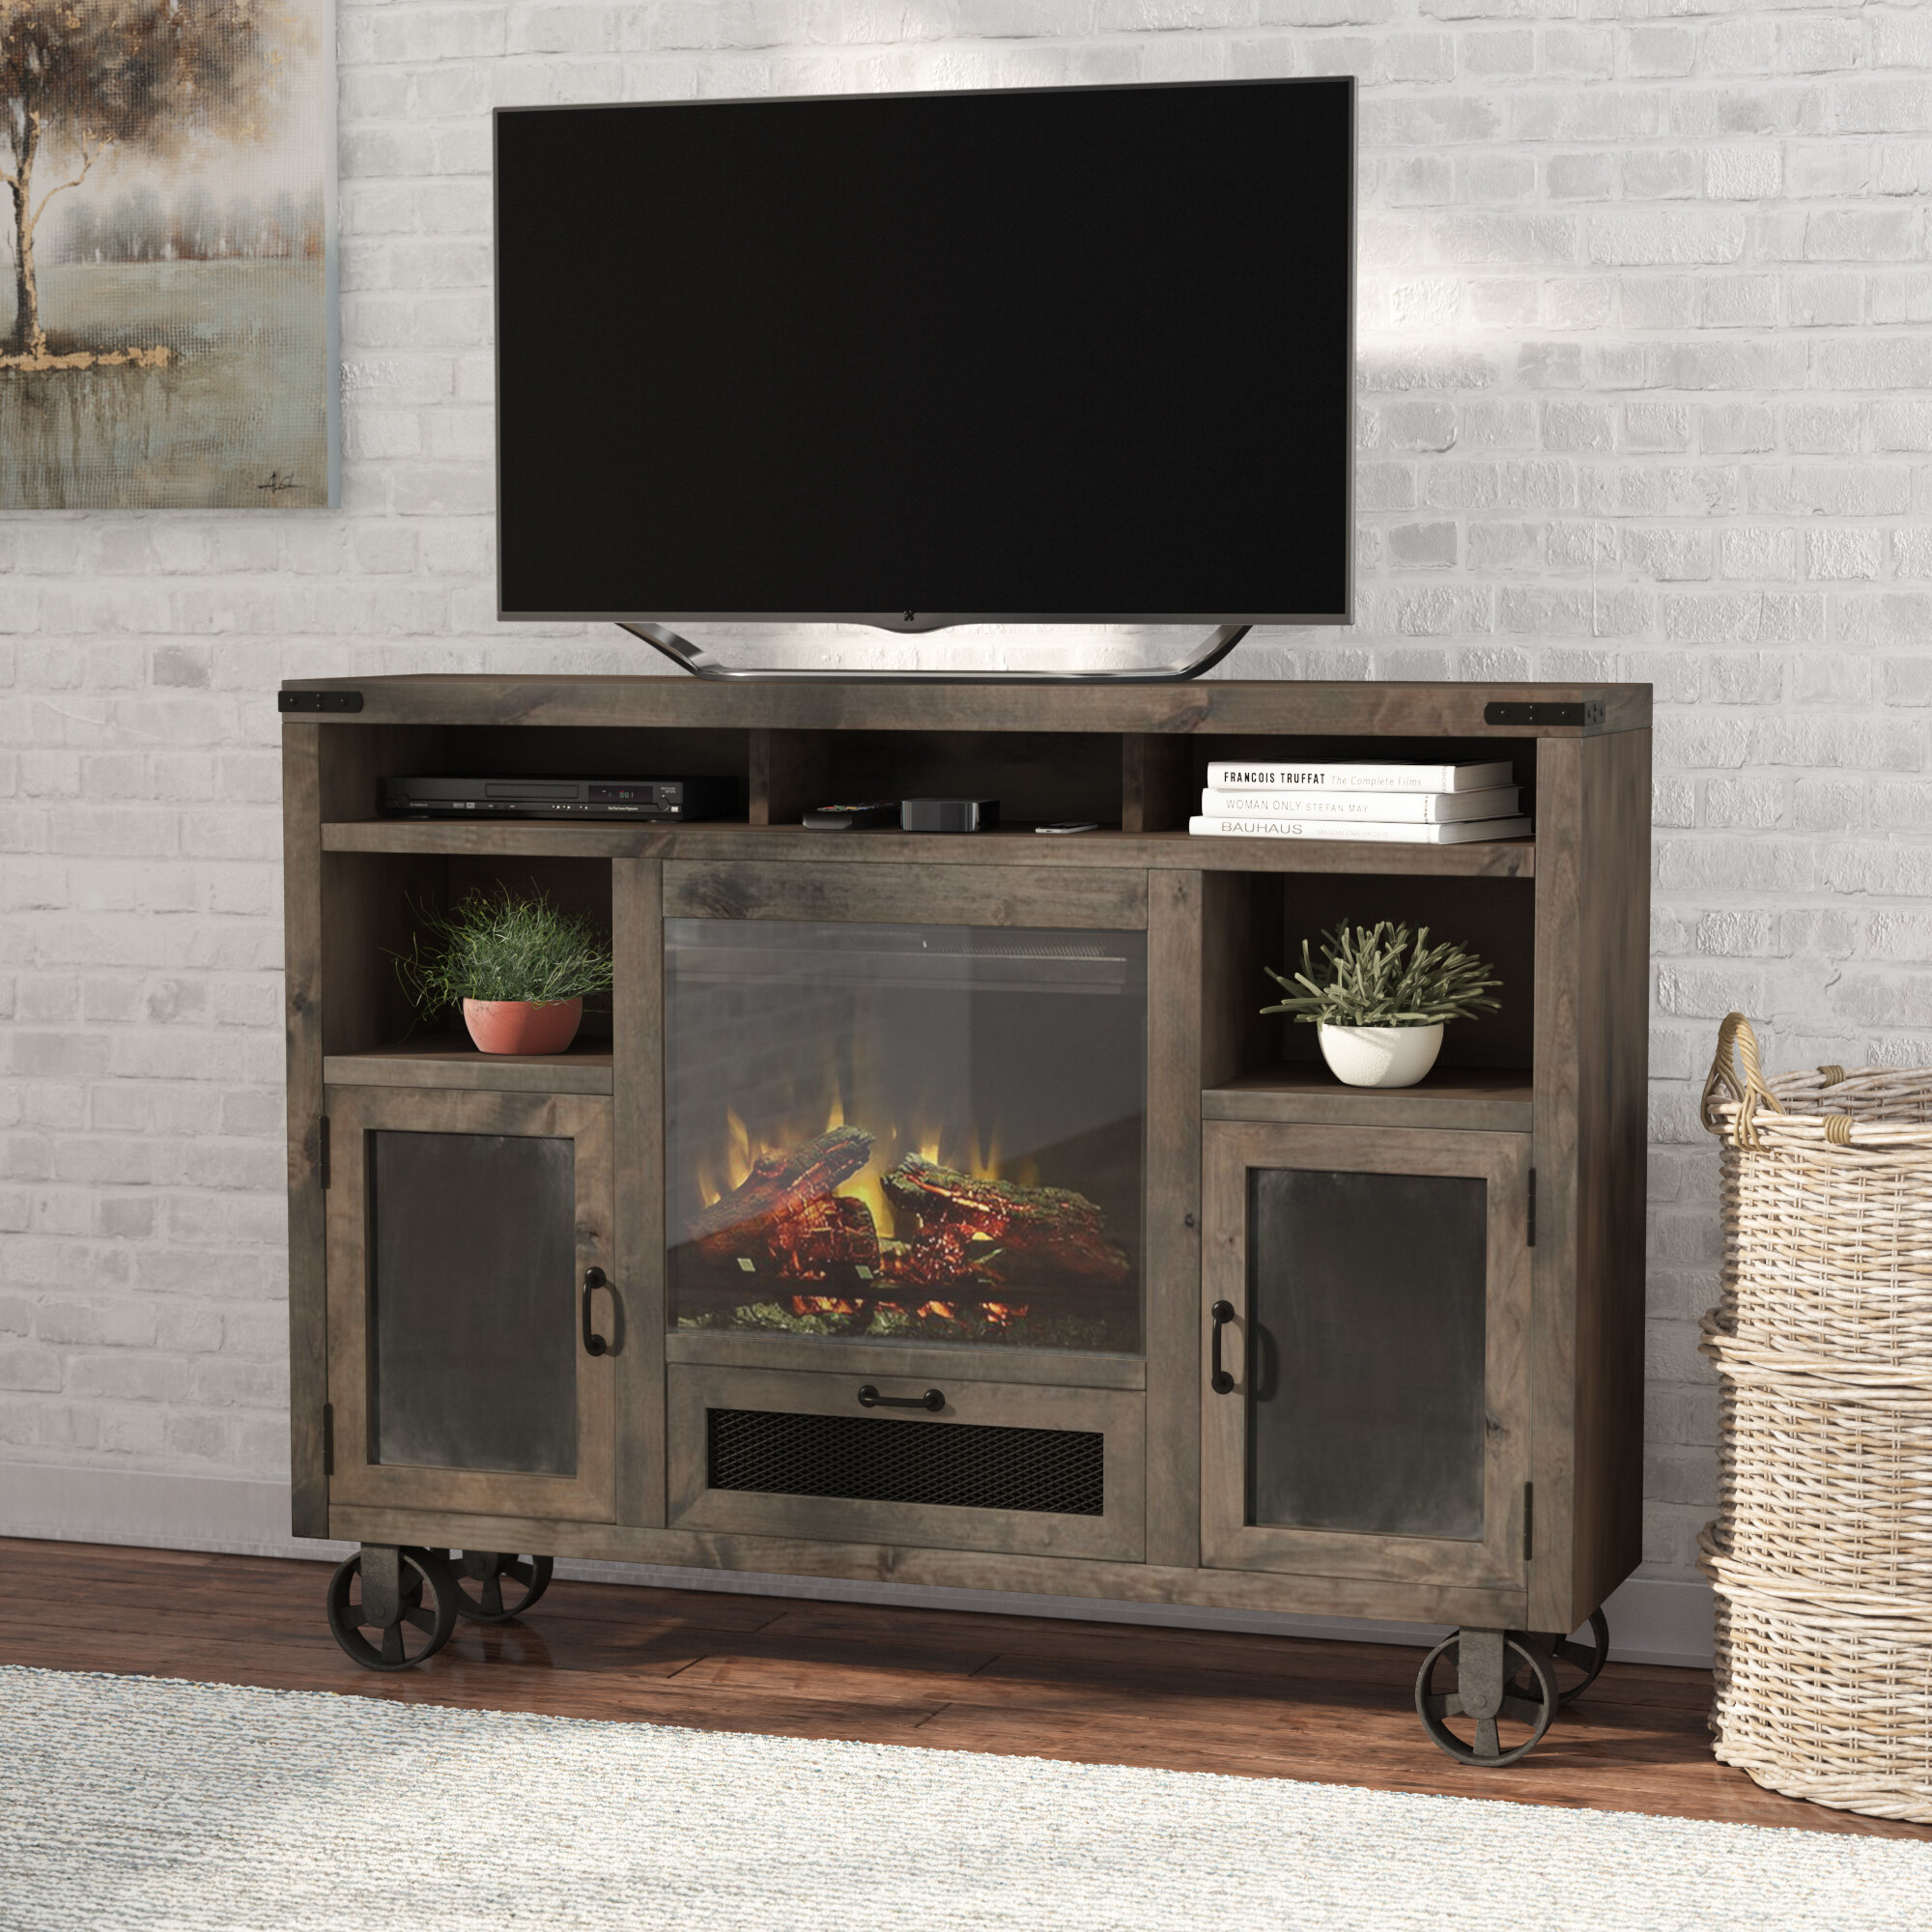 stand signature by furniture insert design rustic trinell ashley number with tv item fireplace large products